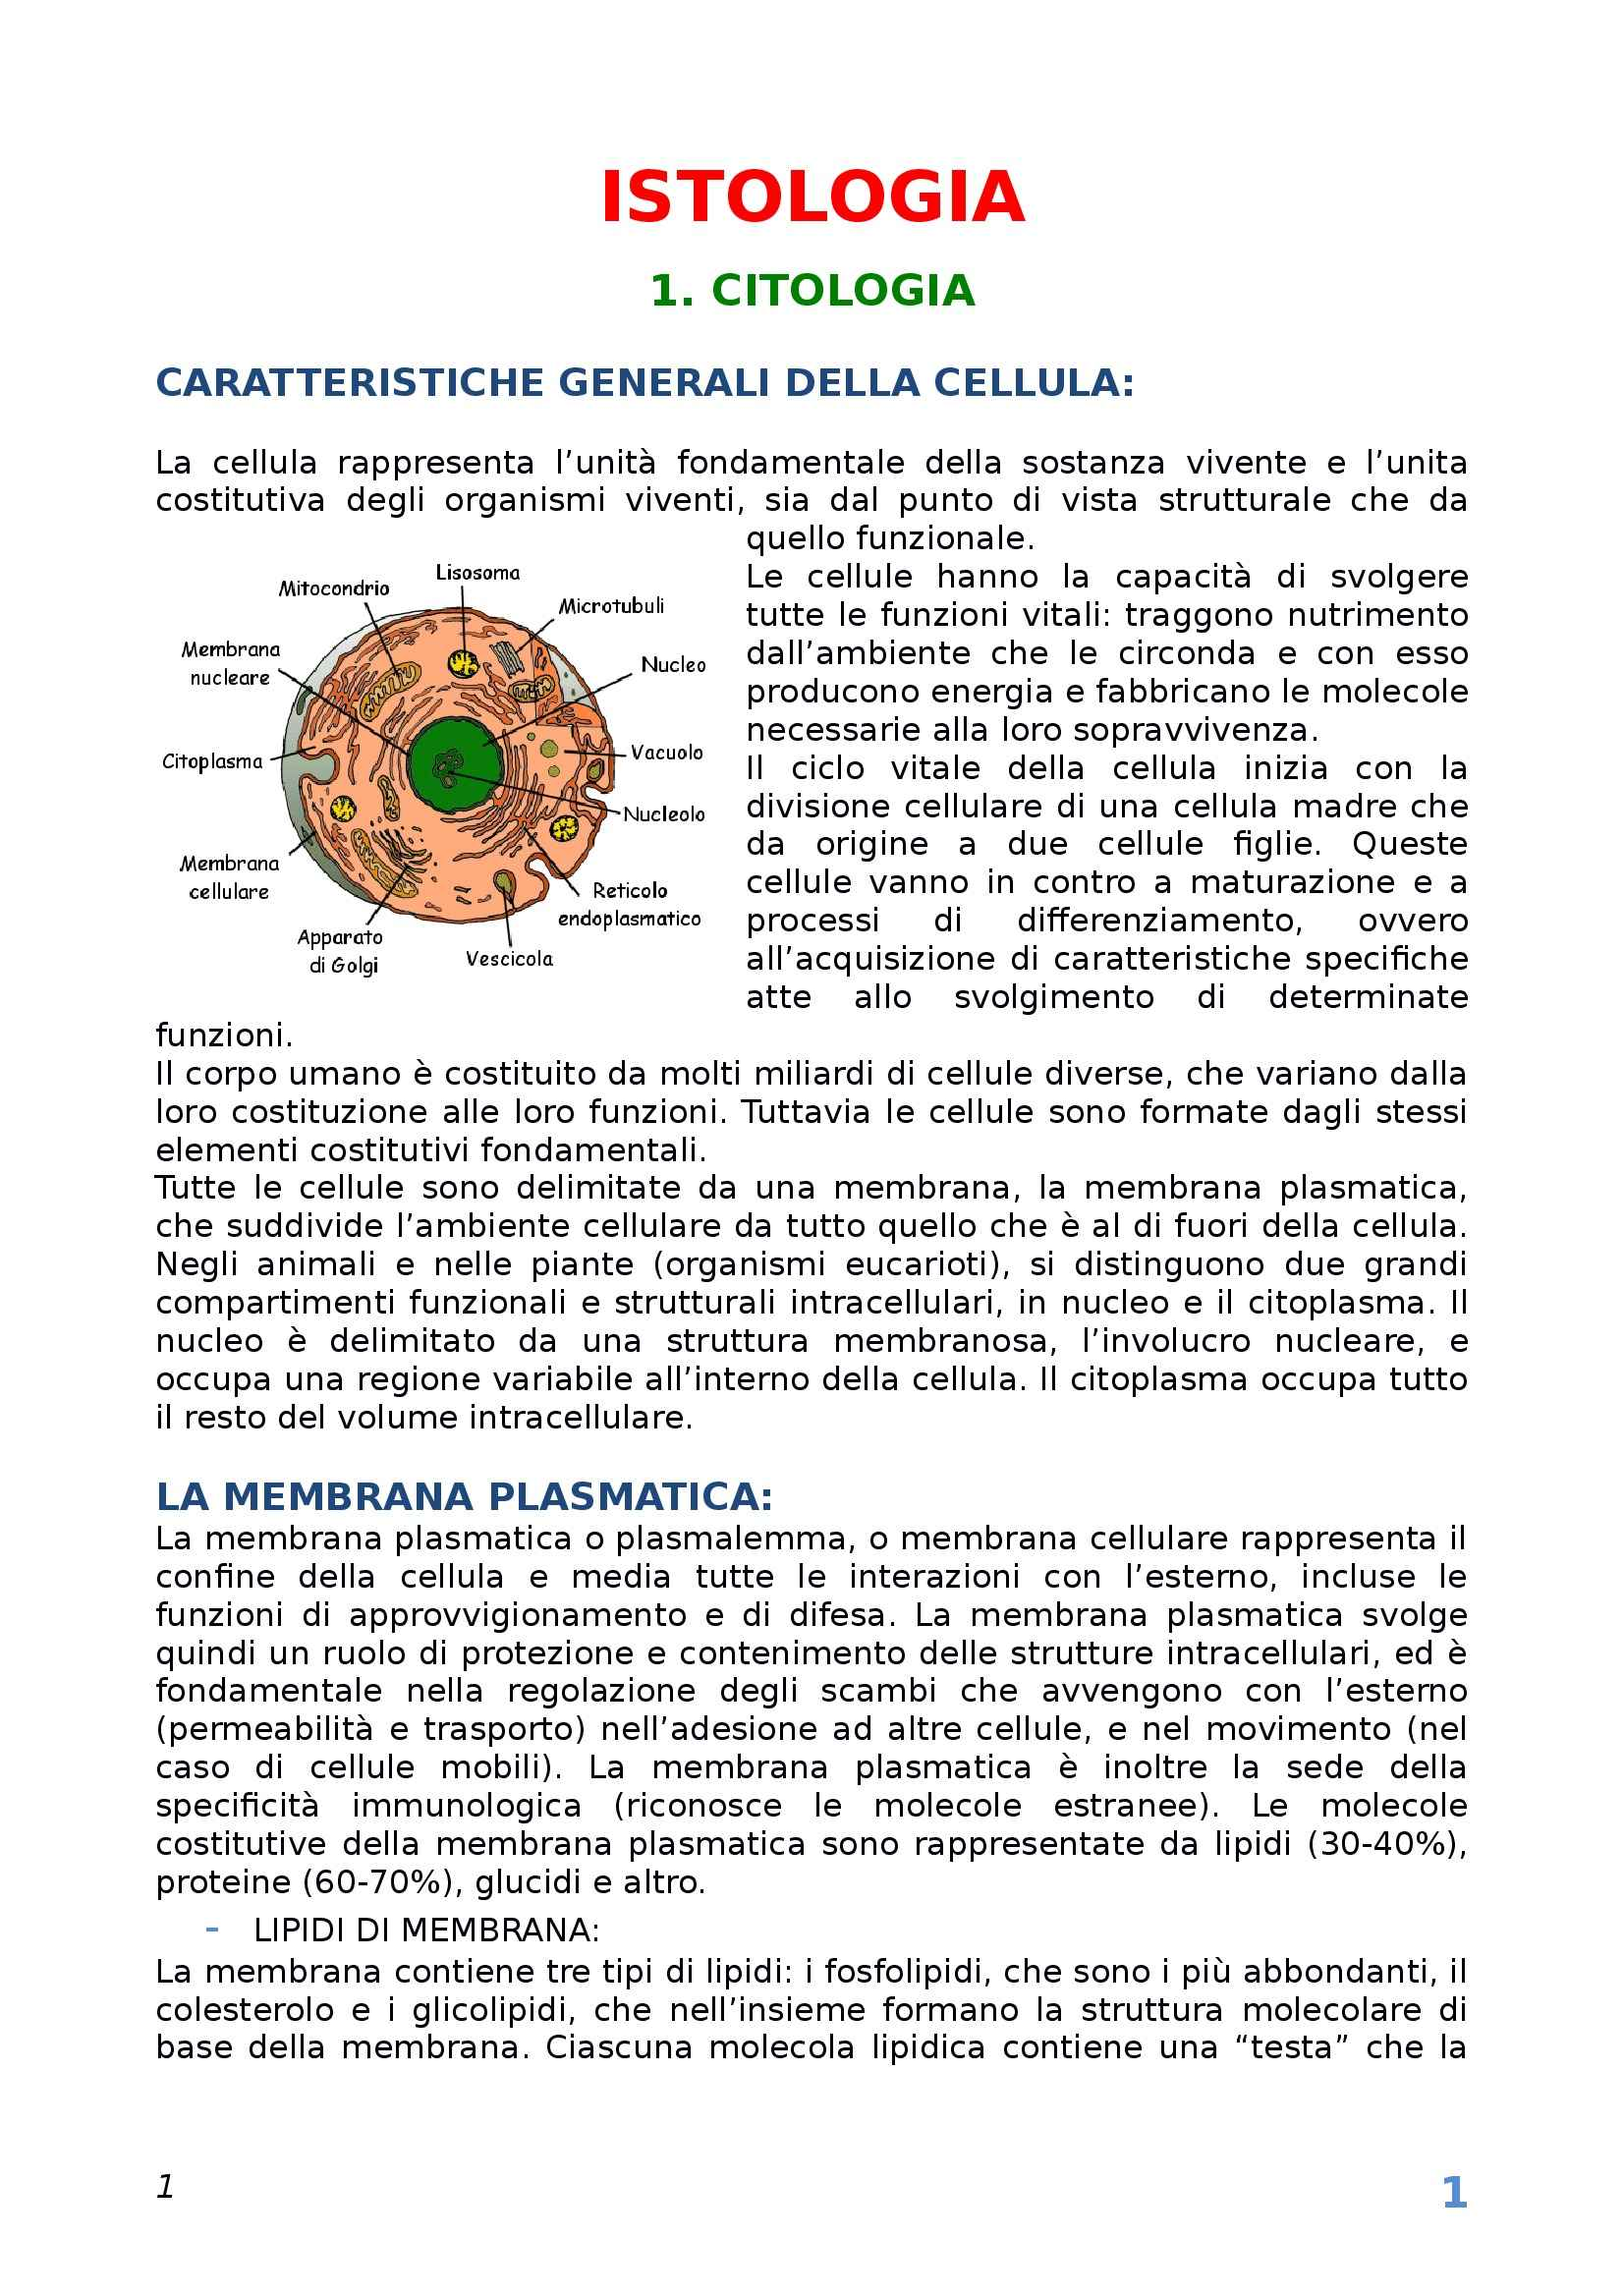 Istologia - Appunti Pag. 1